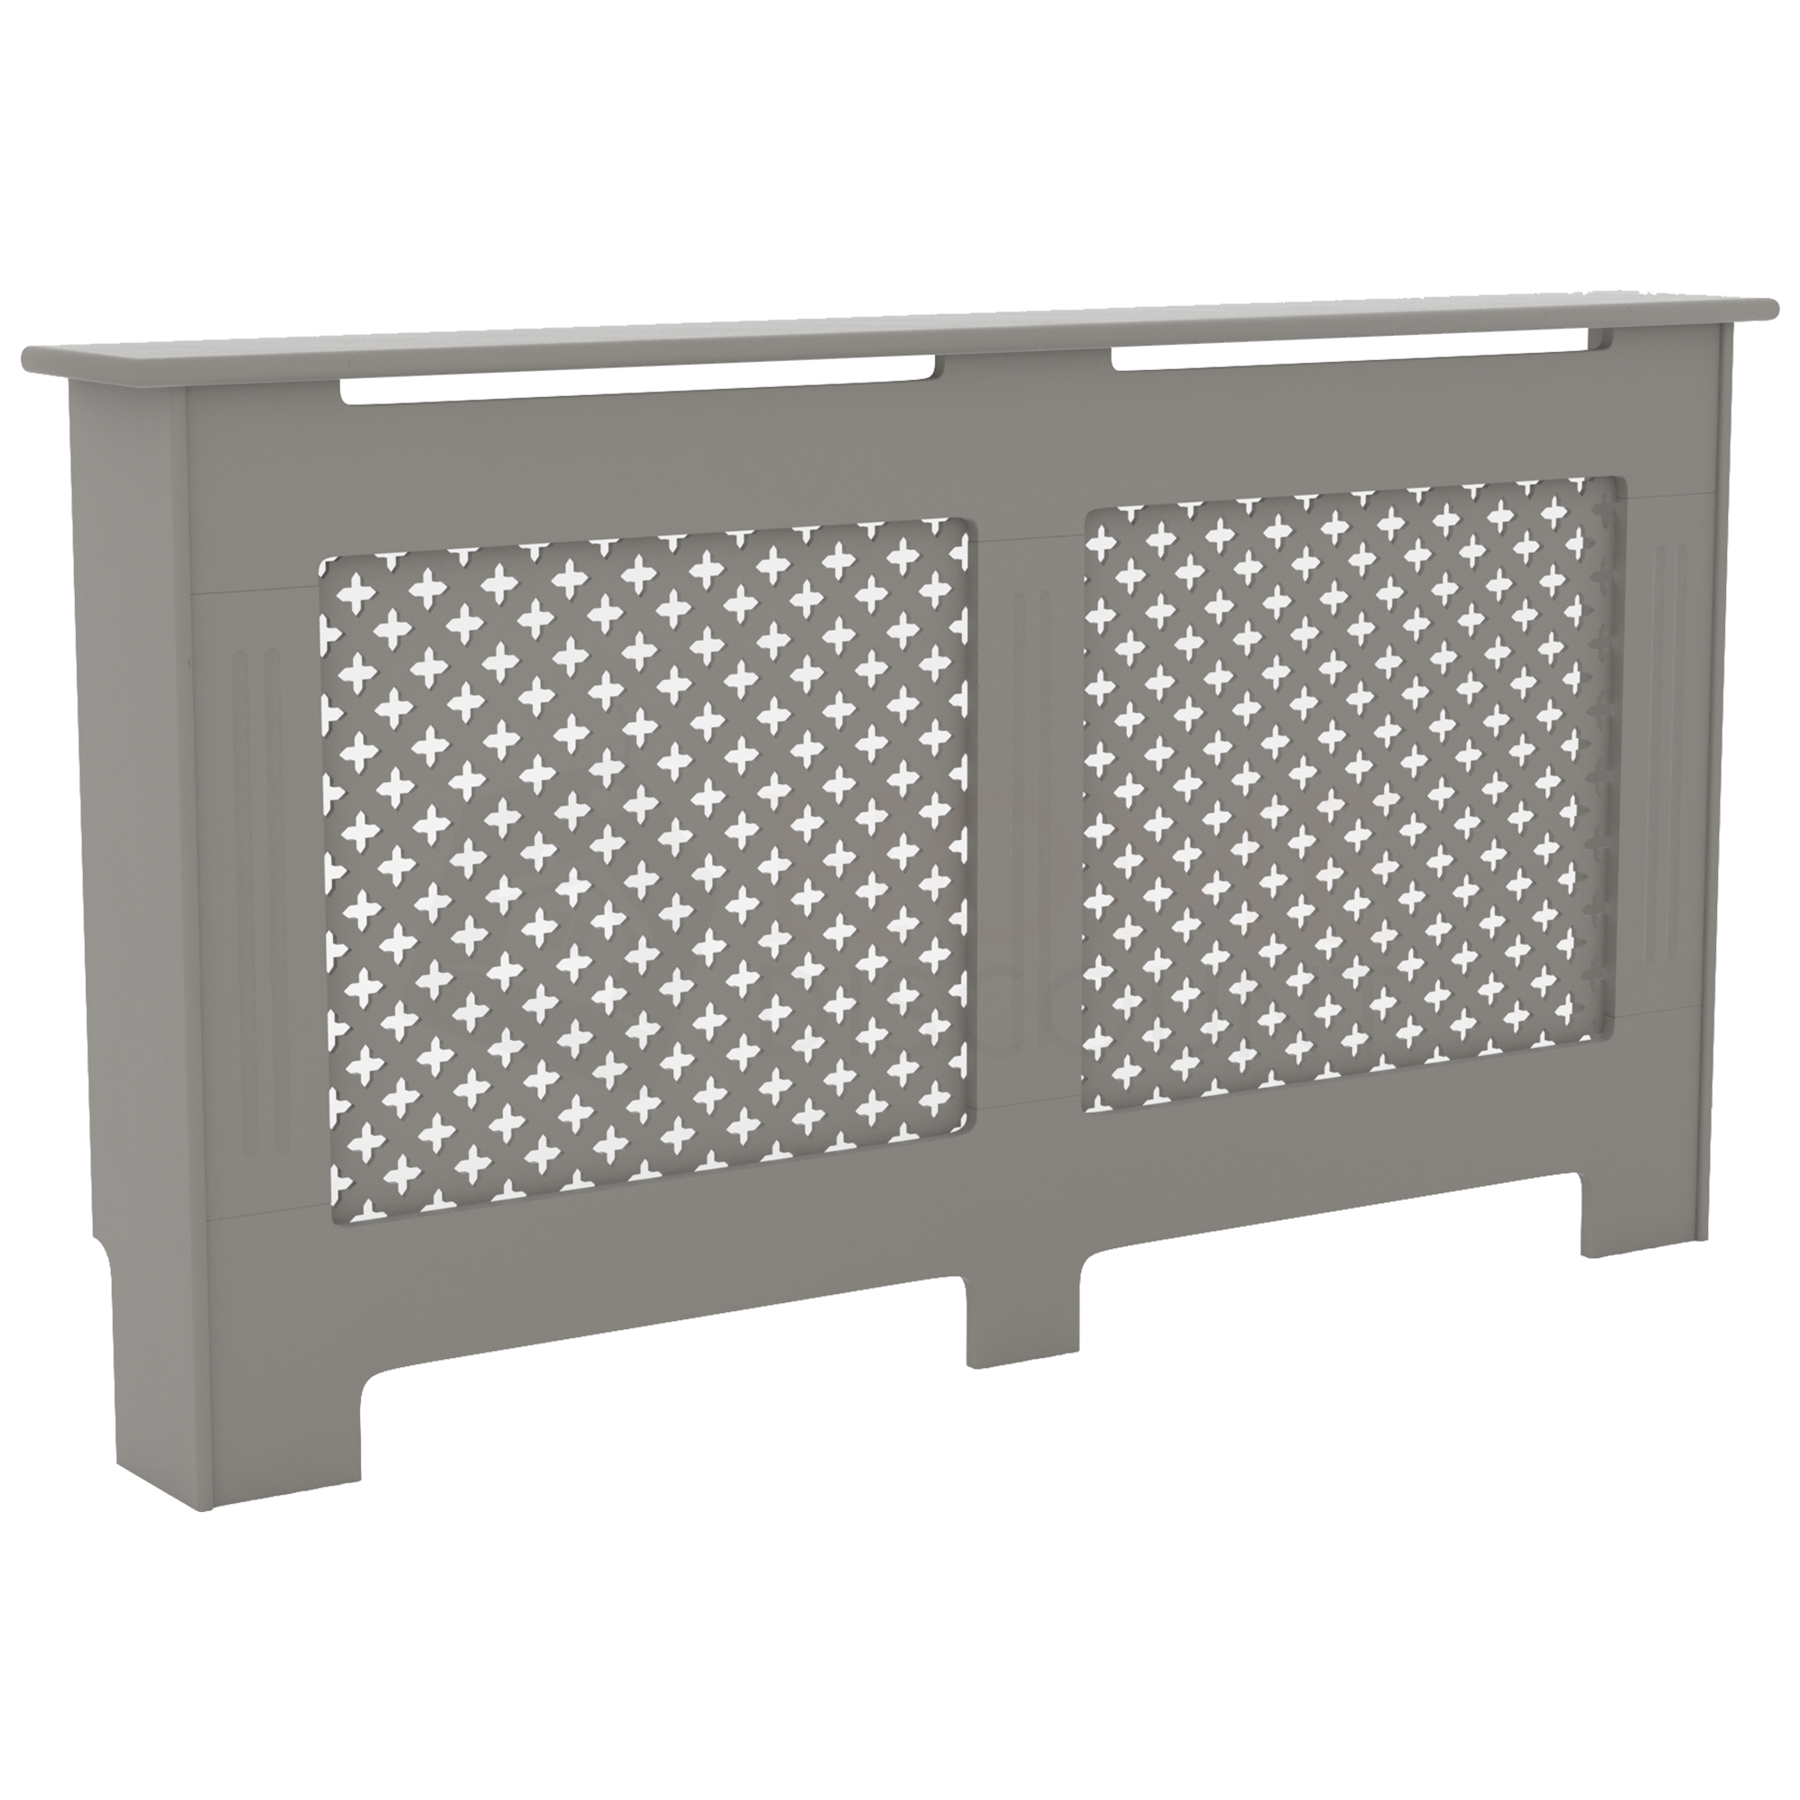 Radiateur-Housse-Blanc-inachevee-MODERNE-BOIS-TRADITIONNELLE-Grill-cabinet-furniture miniature 265